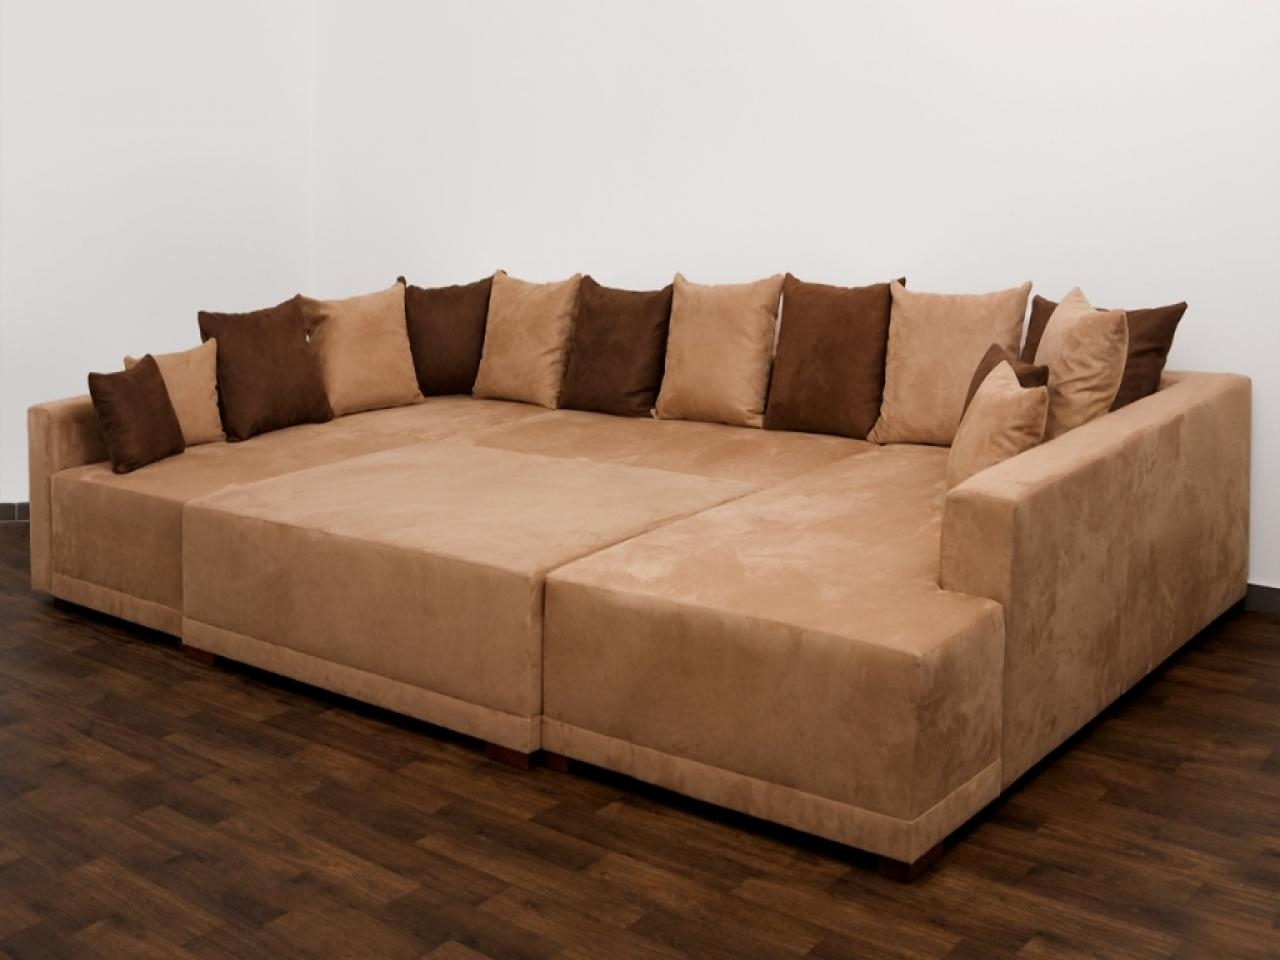 Extra Large Sectional Sofa | Demand Sofas Set In Large Leather Sectional (View 14 of 20)